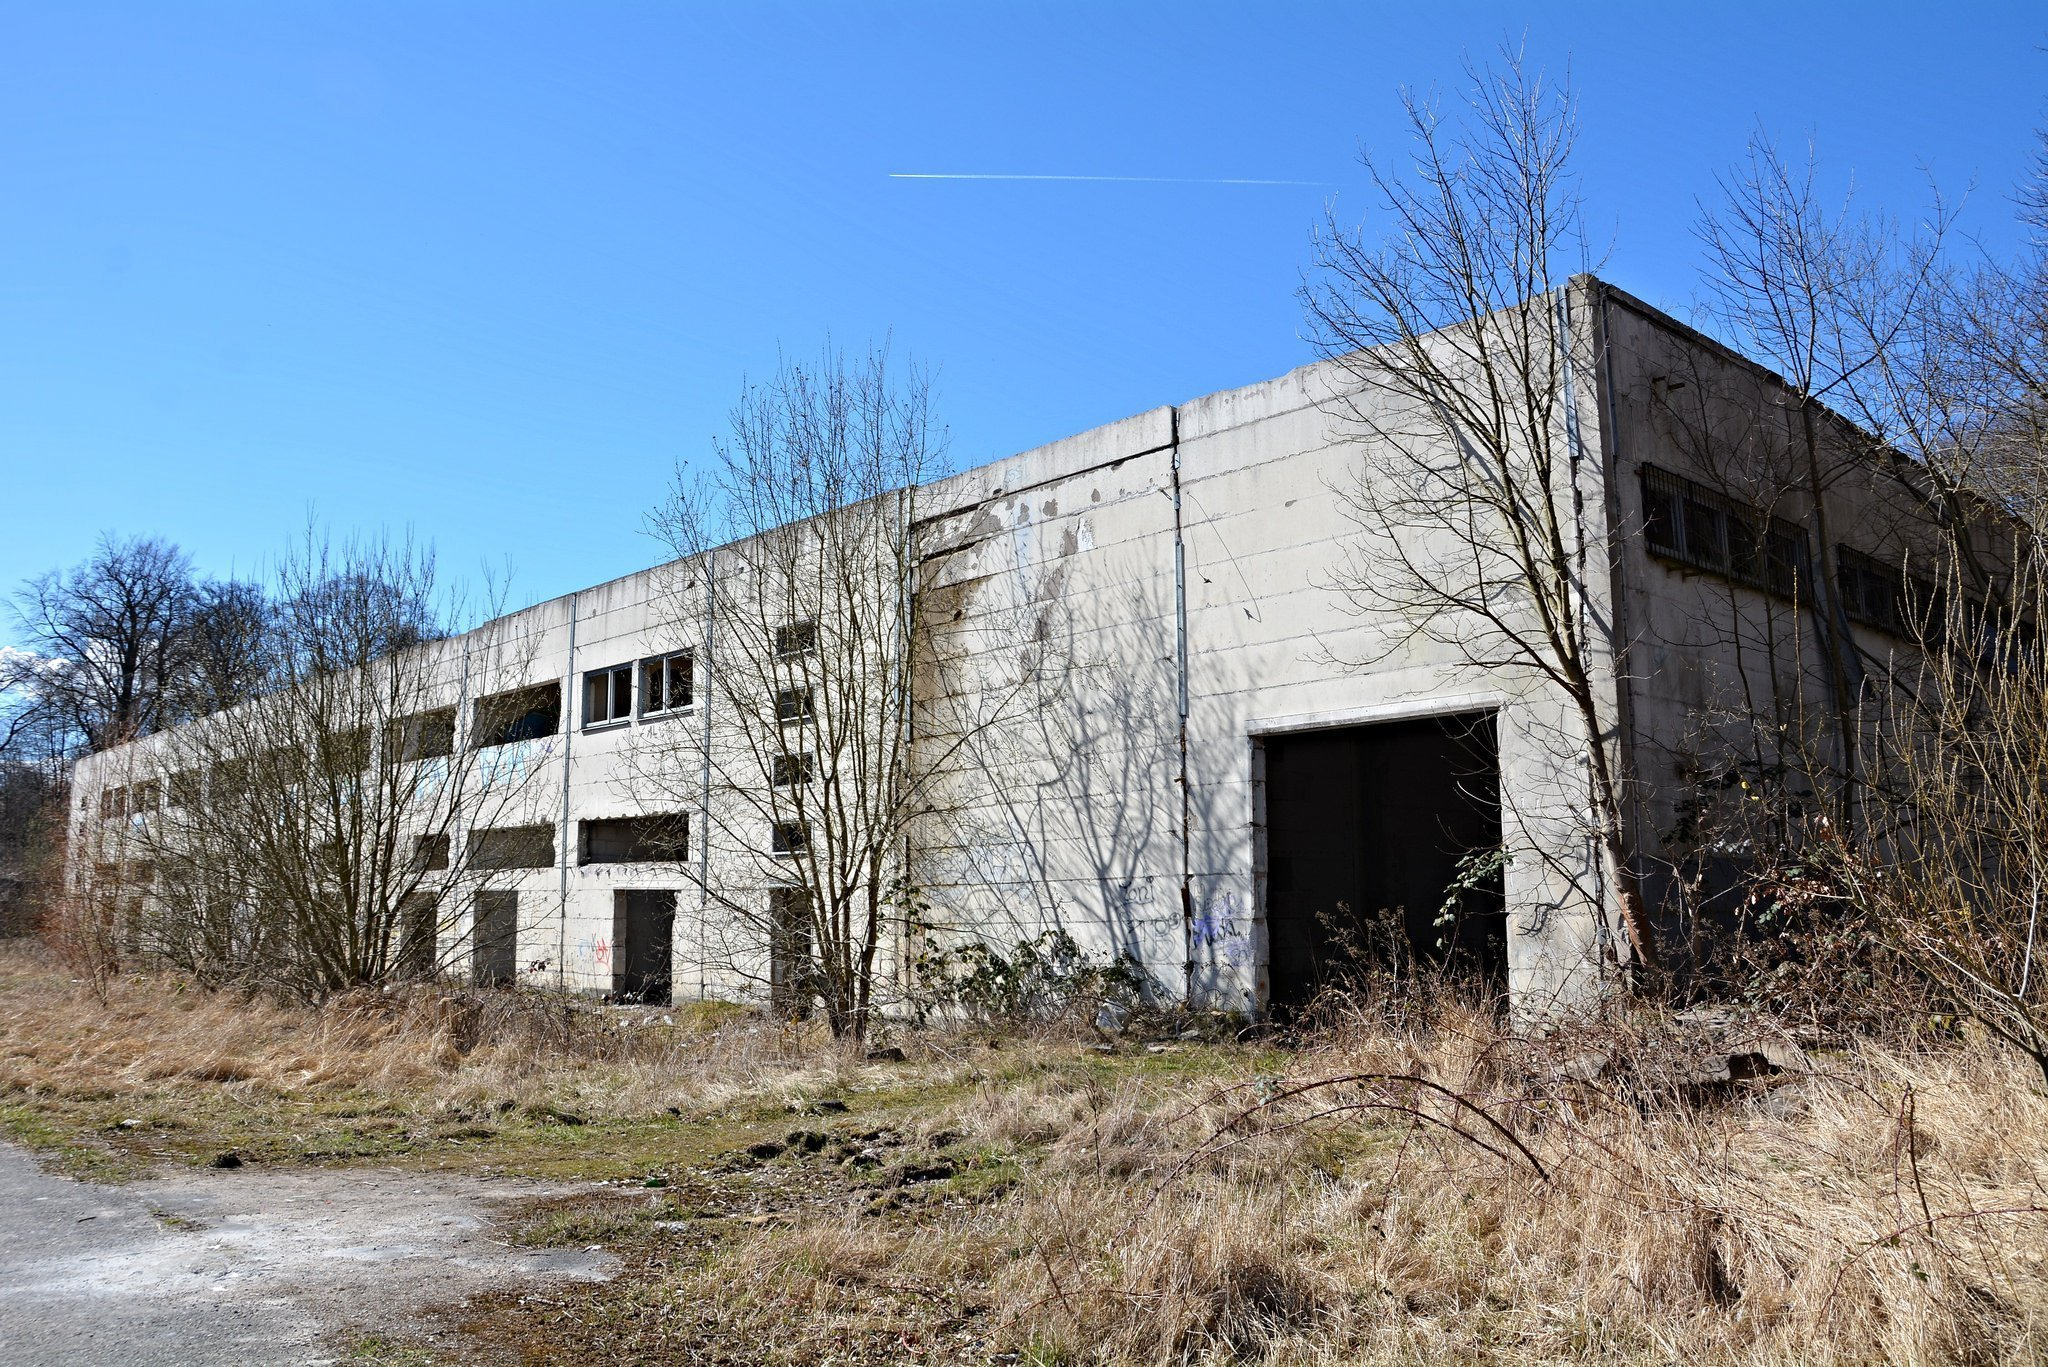 urbex lost places abandoned industry undistrie ddr east germany deutschland